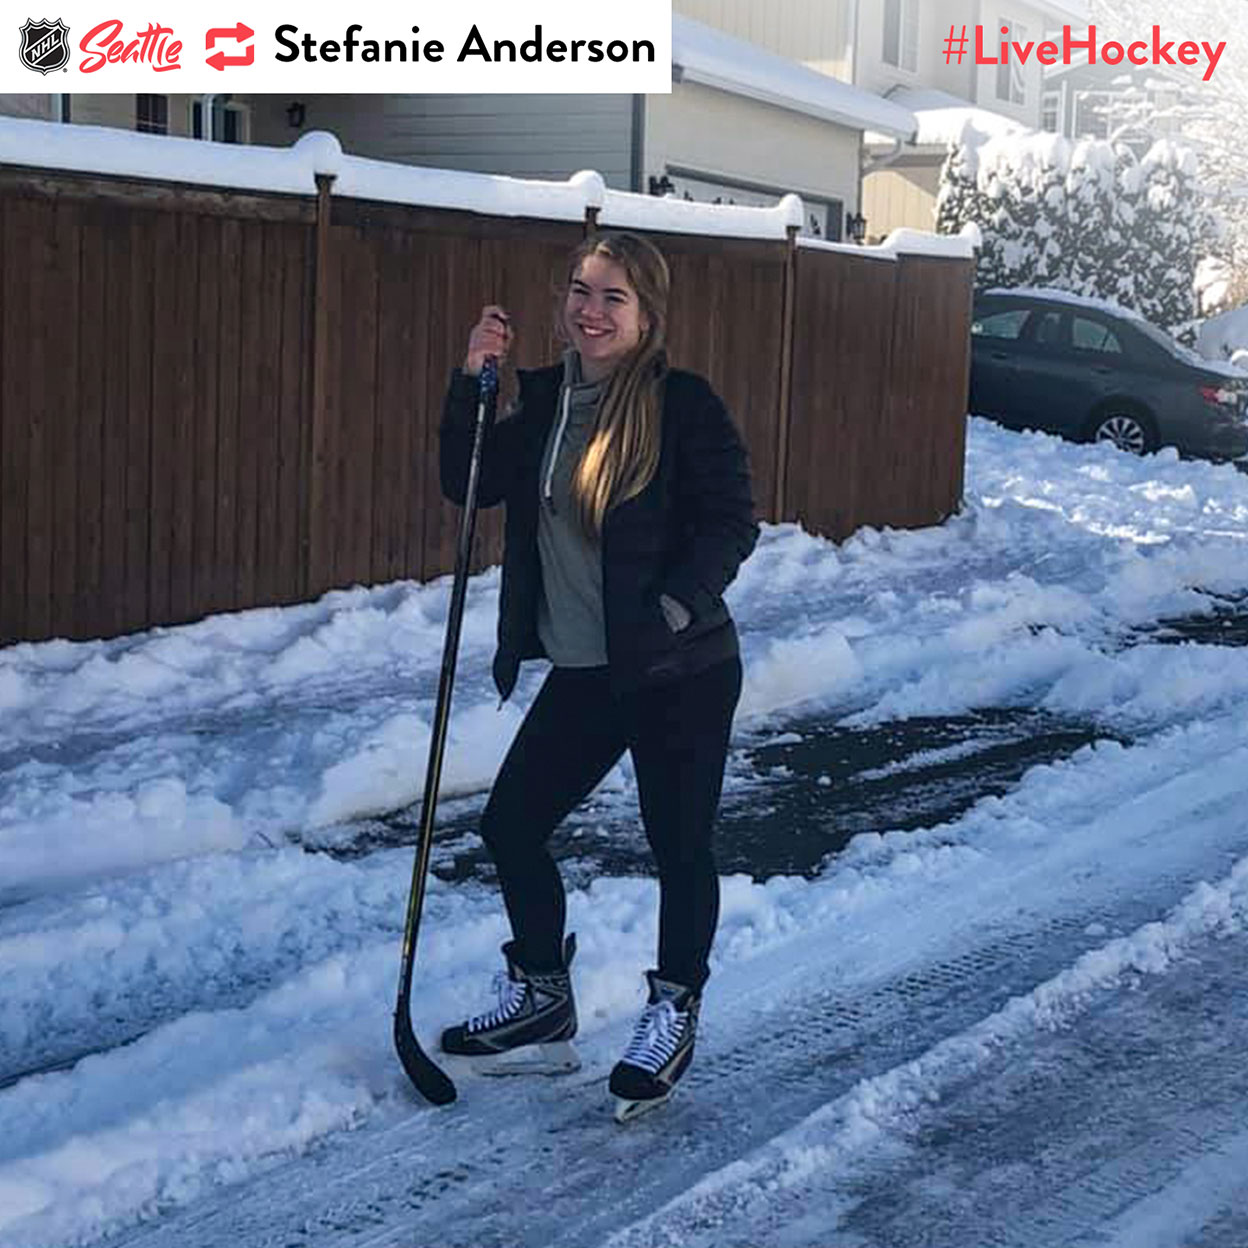 """""""Plays for the Washington Wild when she's not skating in the streets."""""""